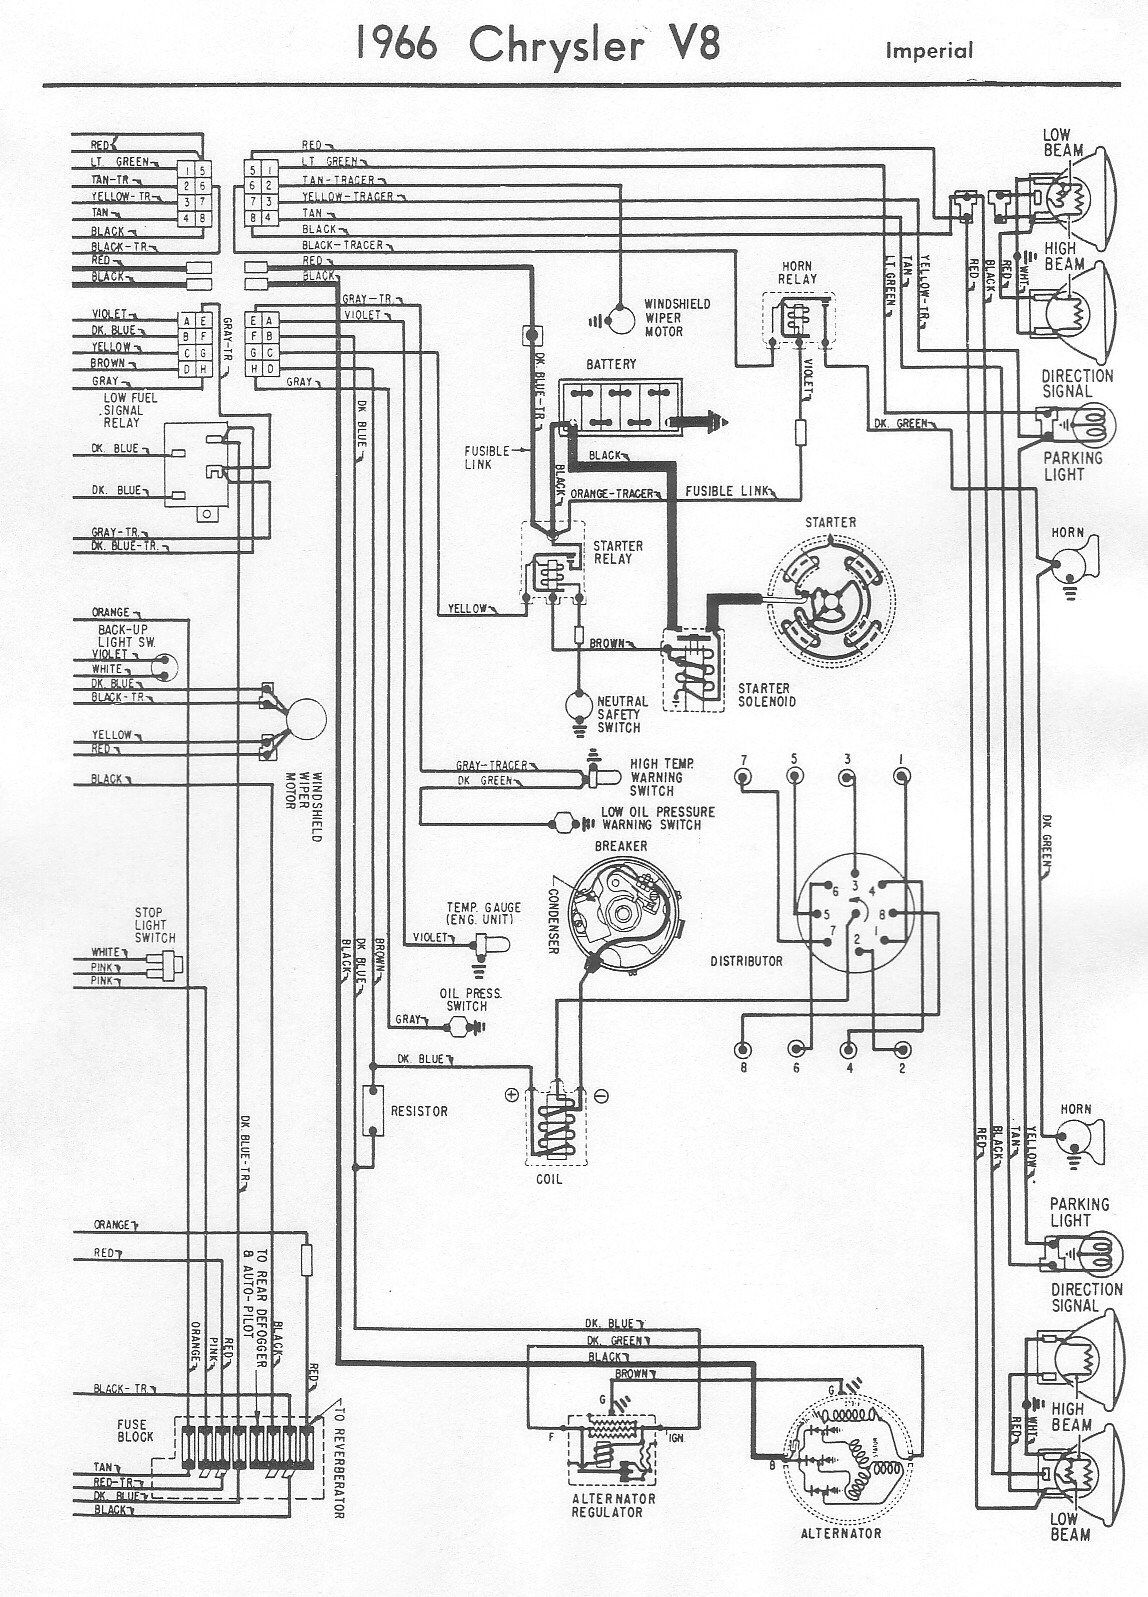 1994 ford ranger truck electrical wiring diagrams schematics